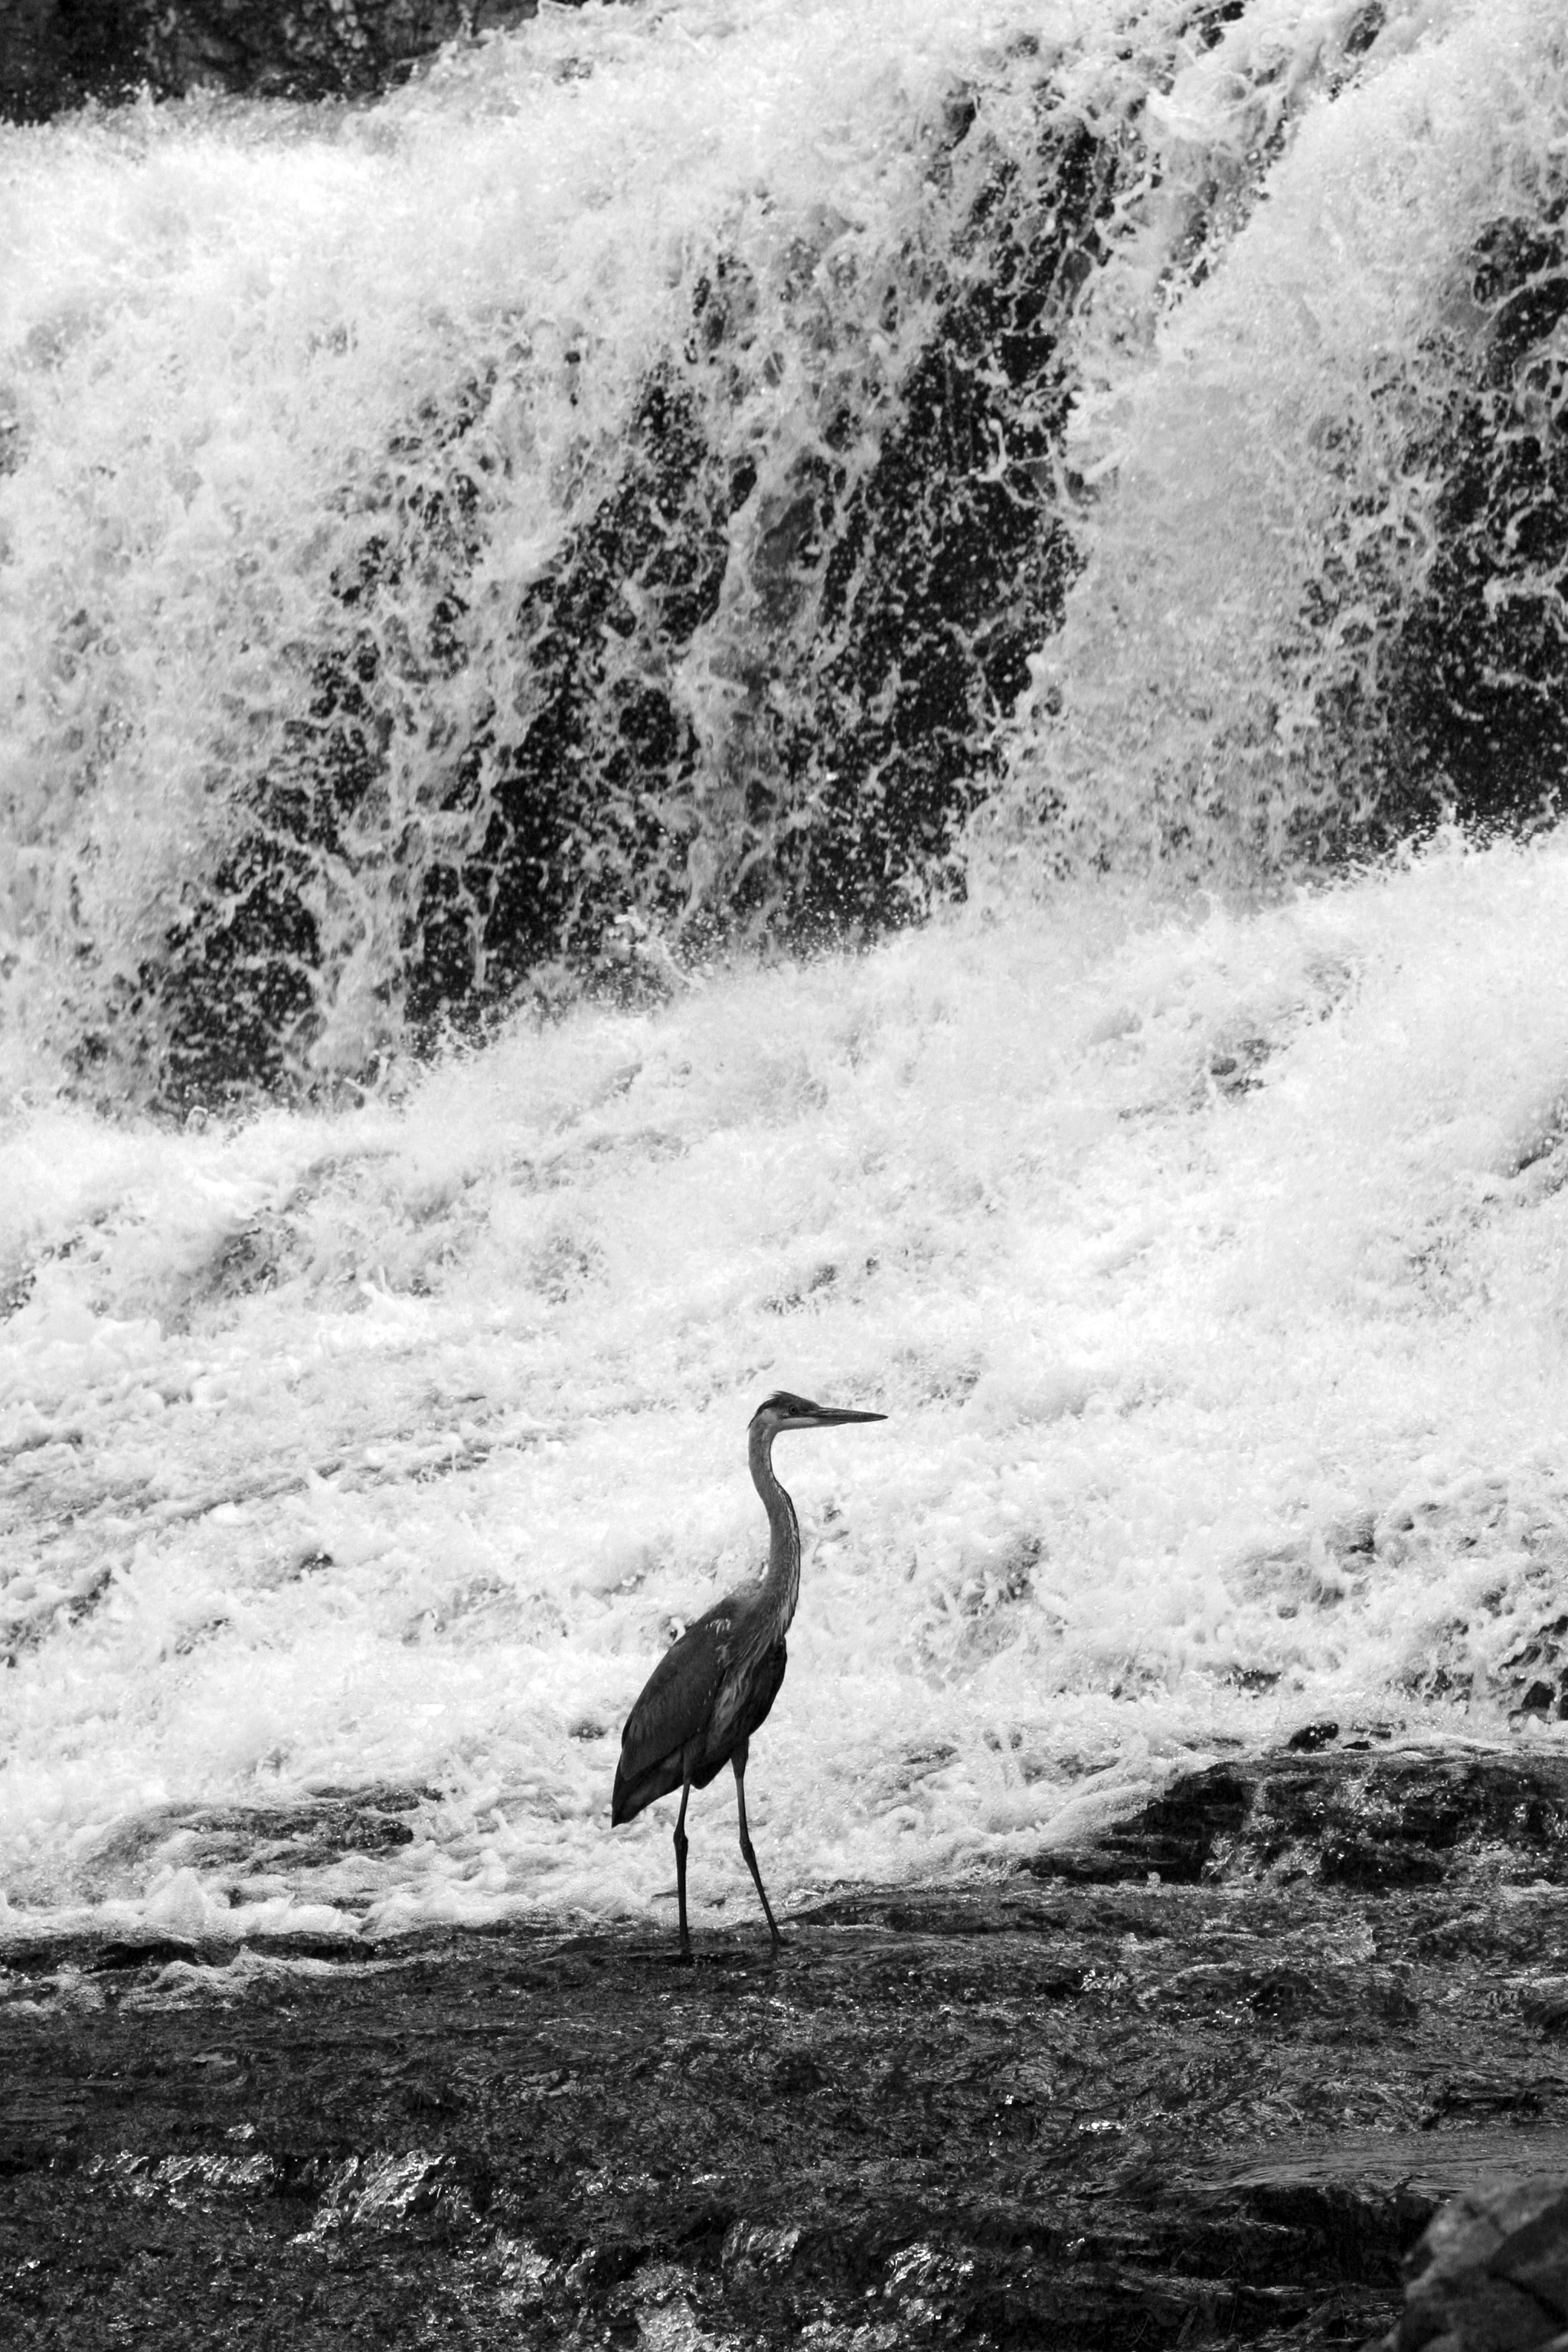 Sandhill crane at Willow River Falls, Wisconsin